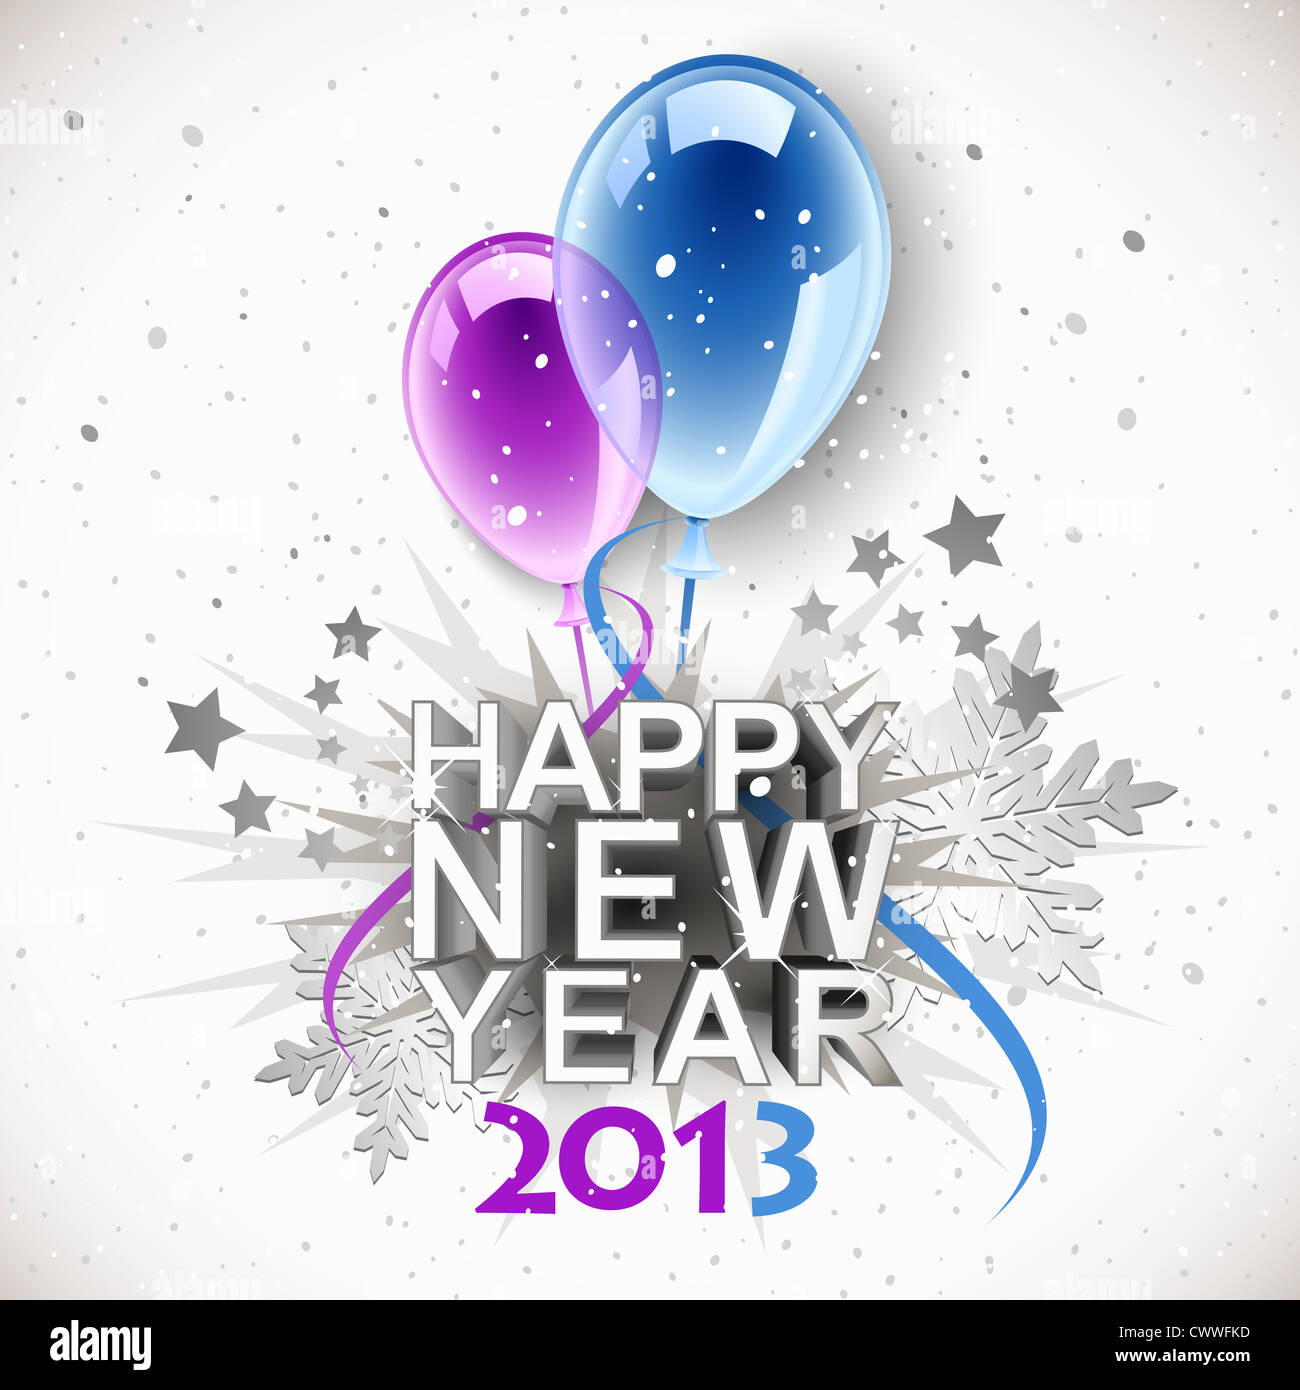 Vintage New Year 2013 with balloons - Stock Image